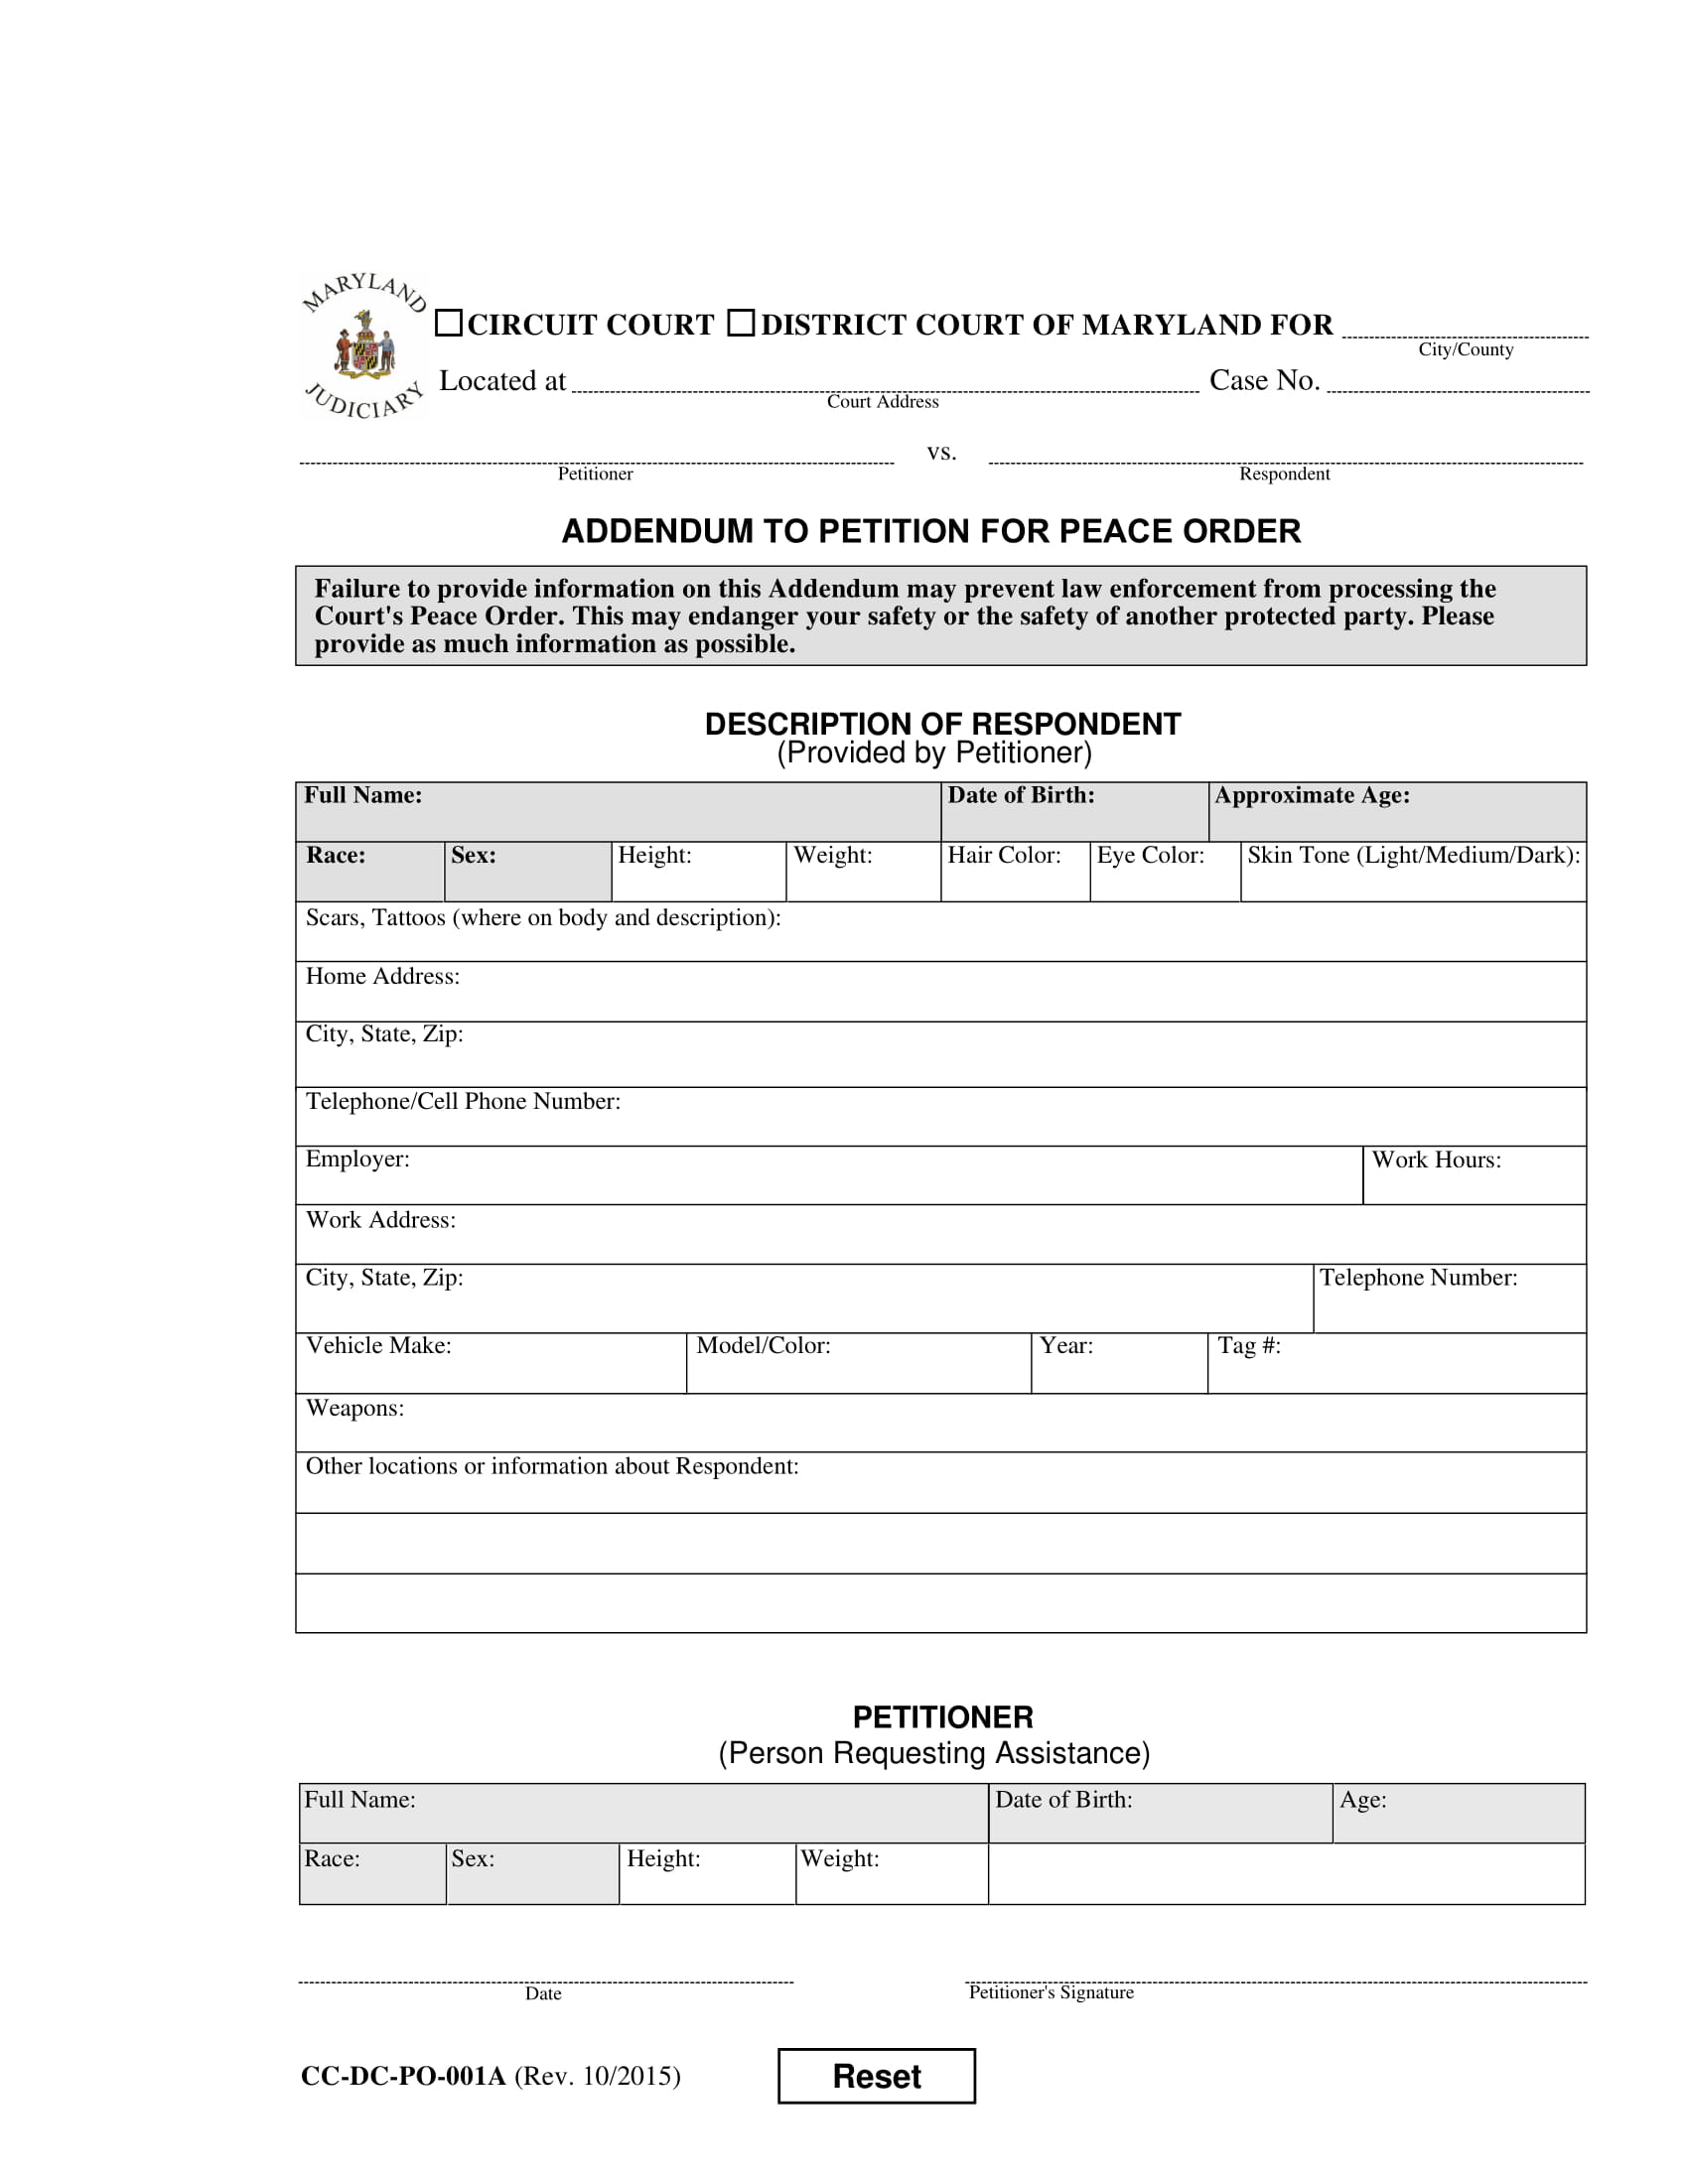 legal petition for peace order form 1